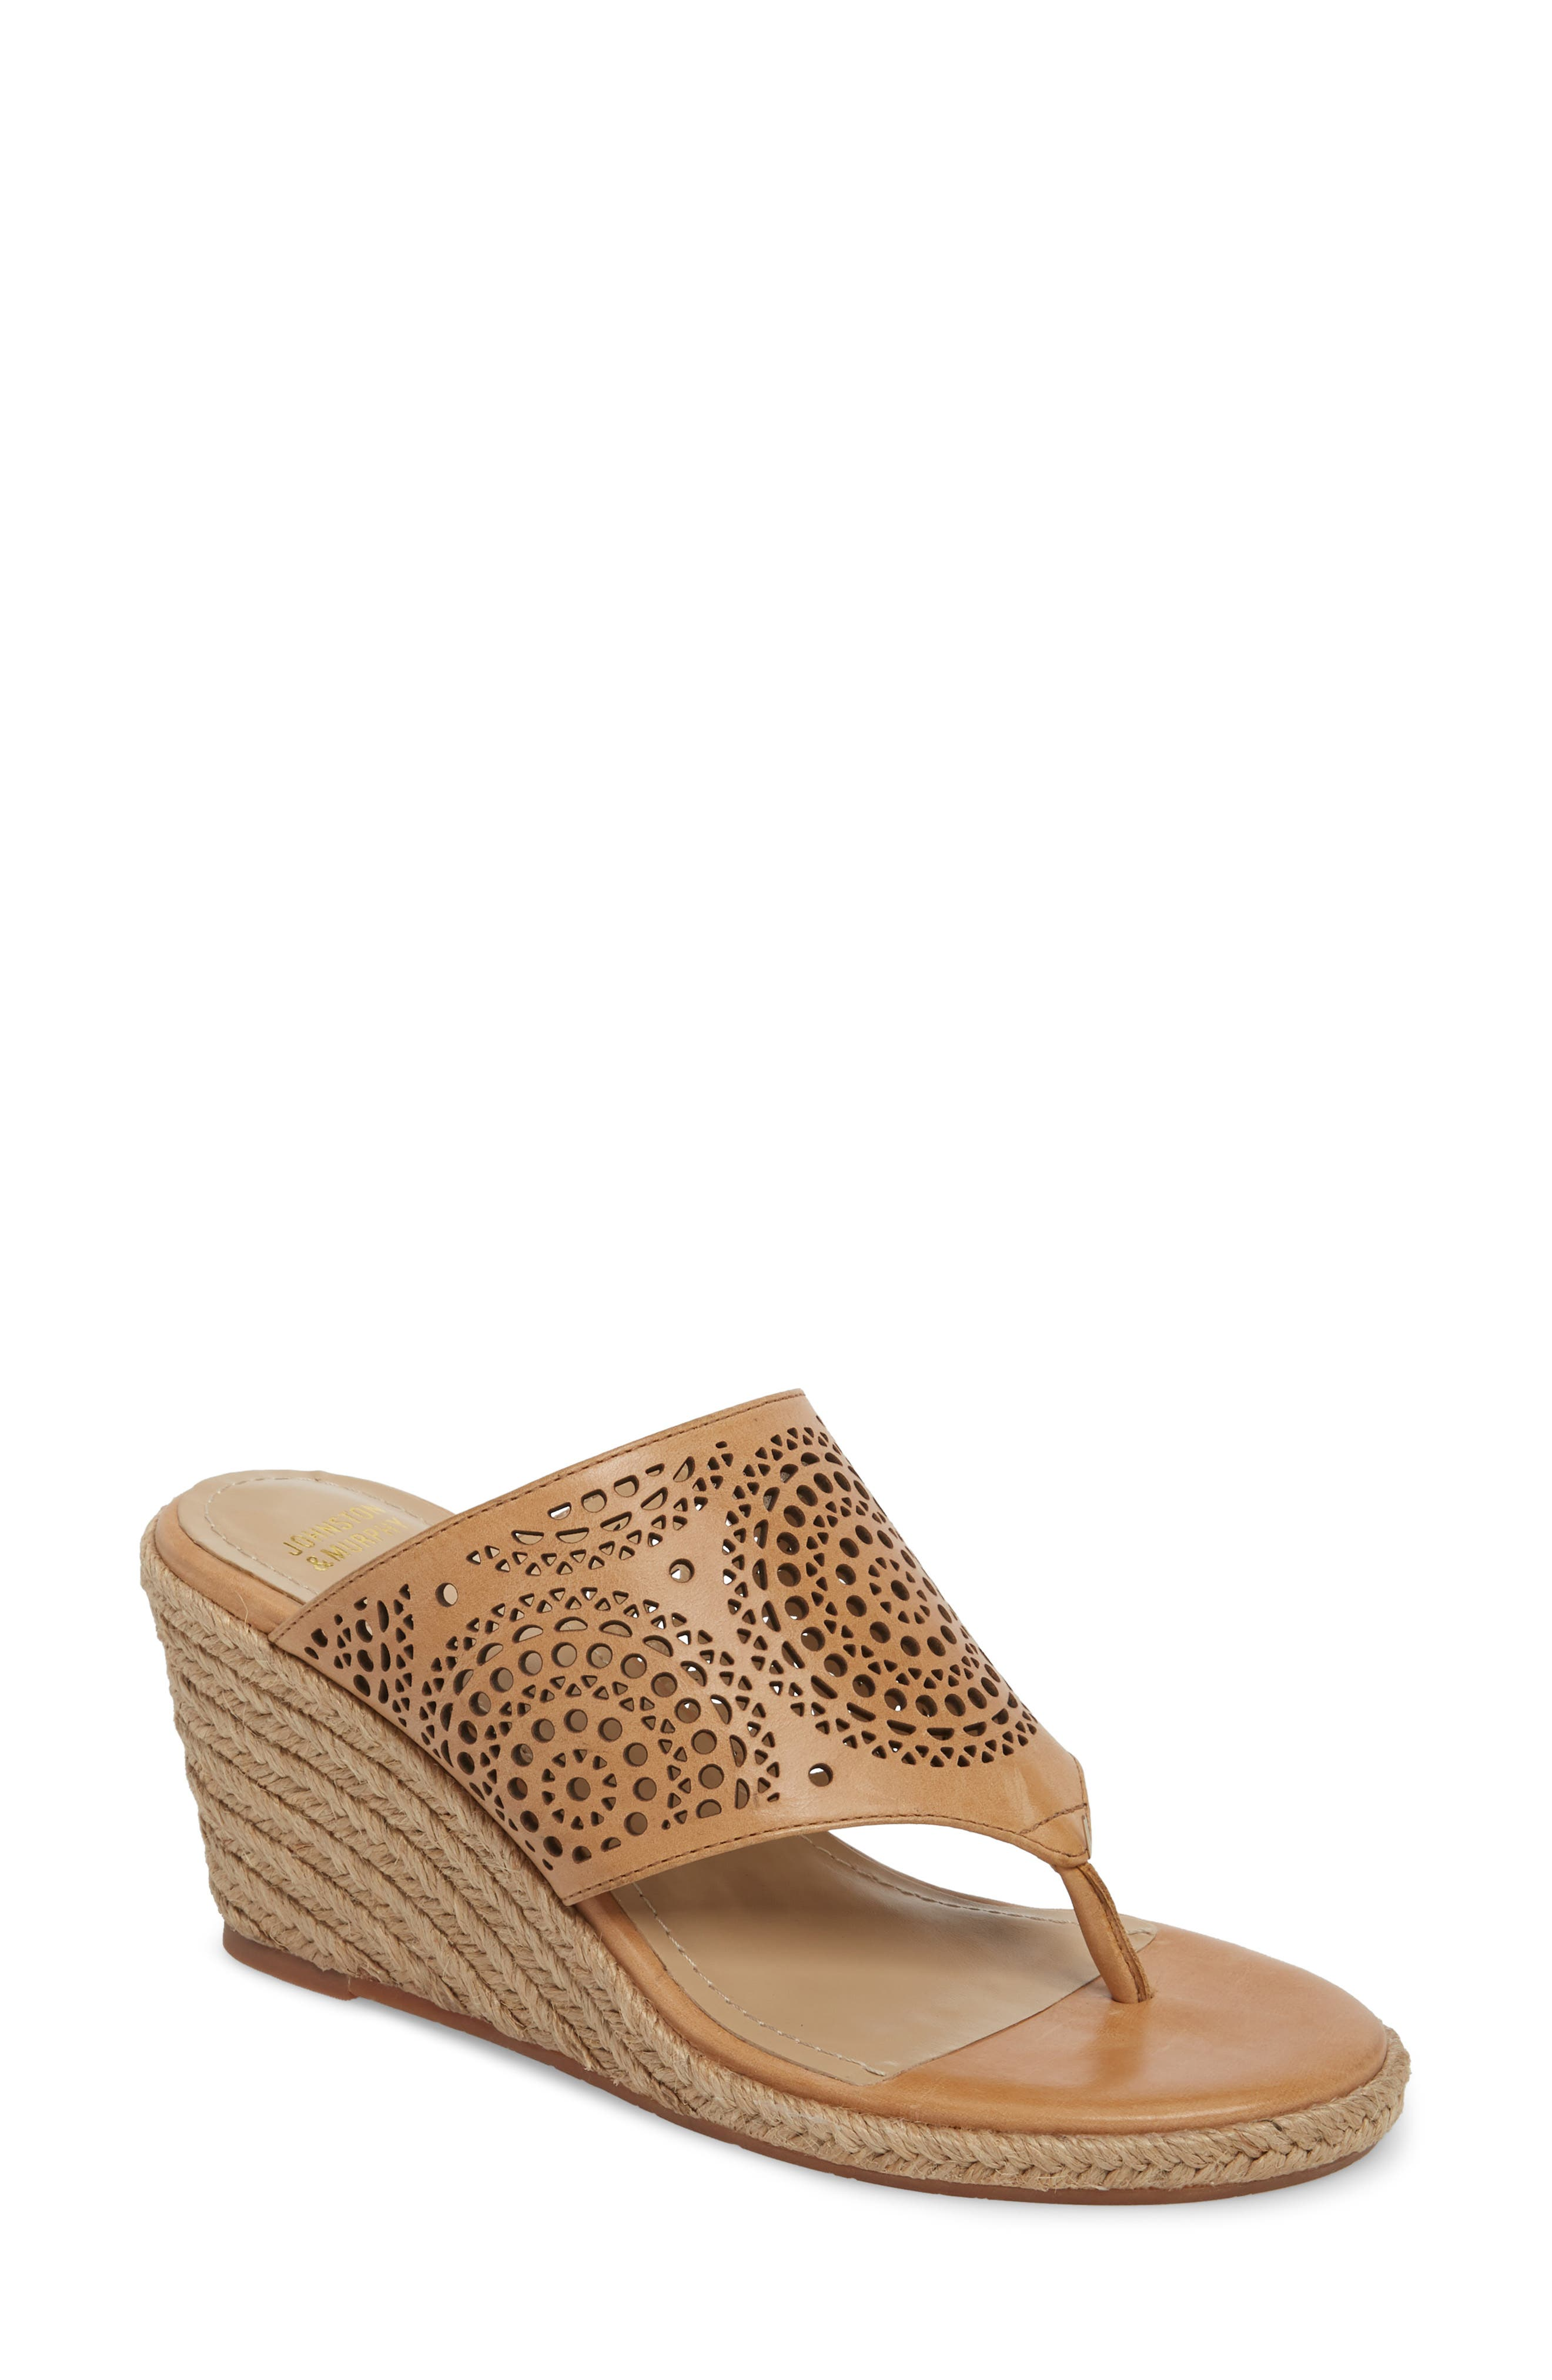 Gina Wedge Sandal,                         Main,                         color,